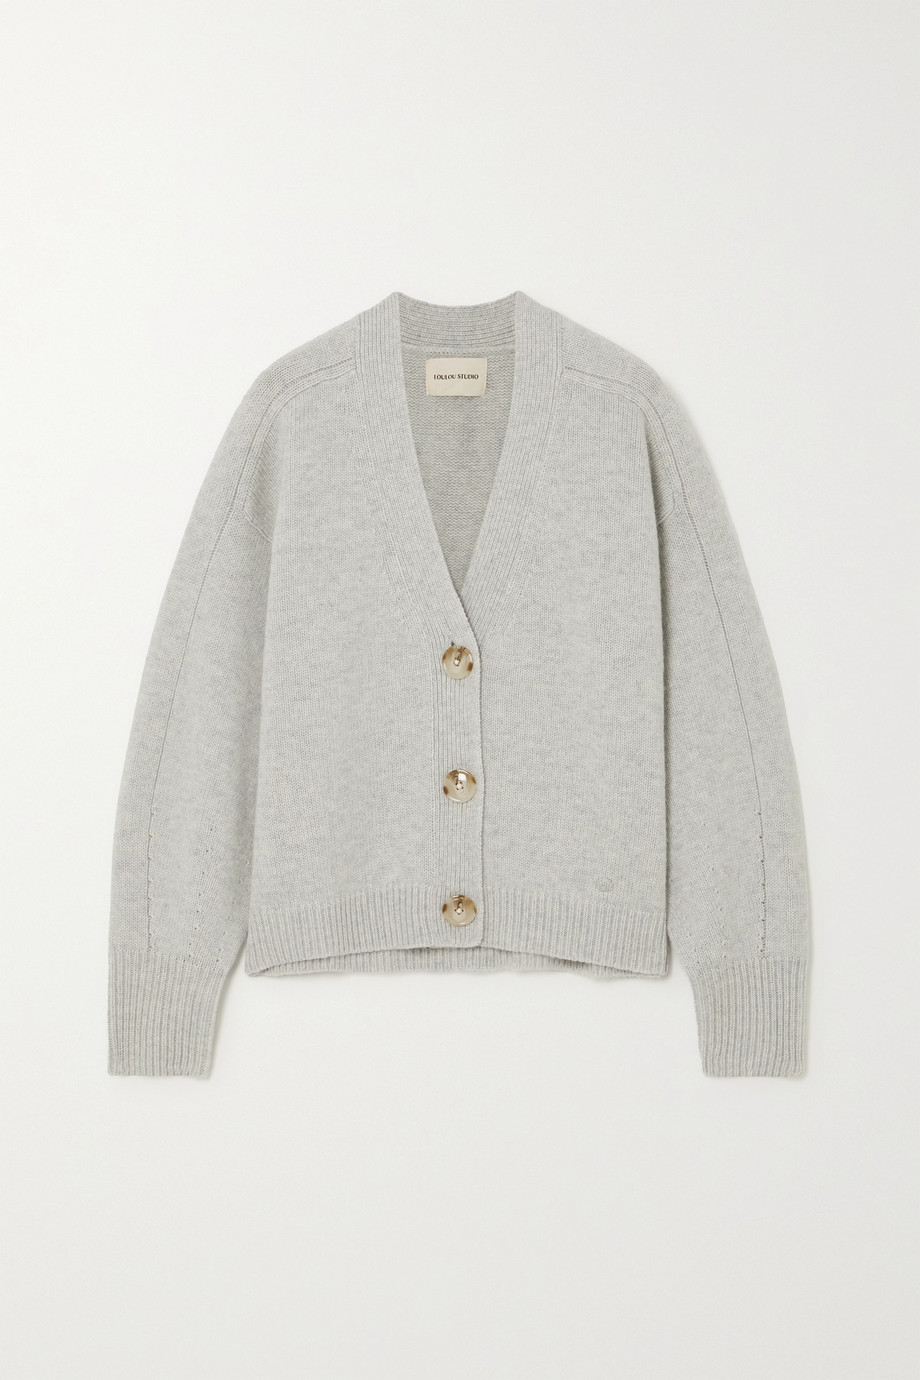 LOULOU STUDIO Zanzibar mélange wool and cashmere-blend cardigan